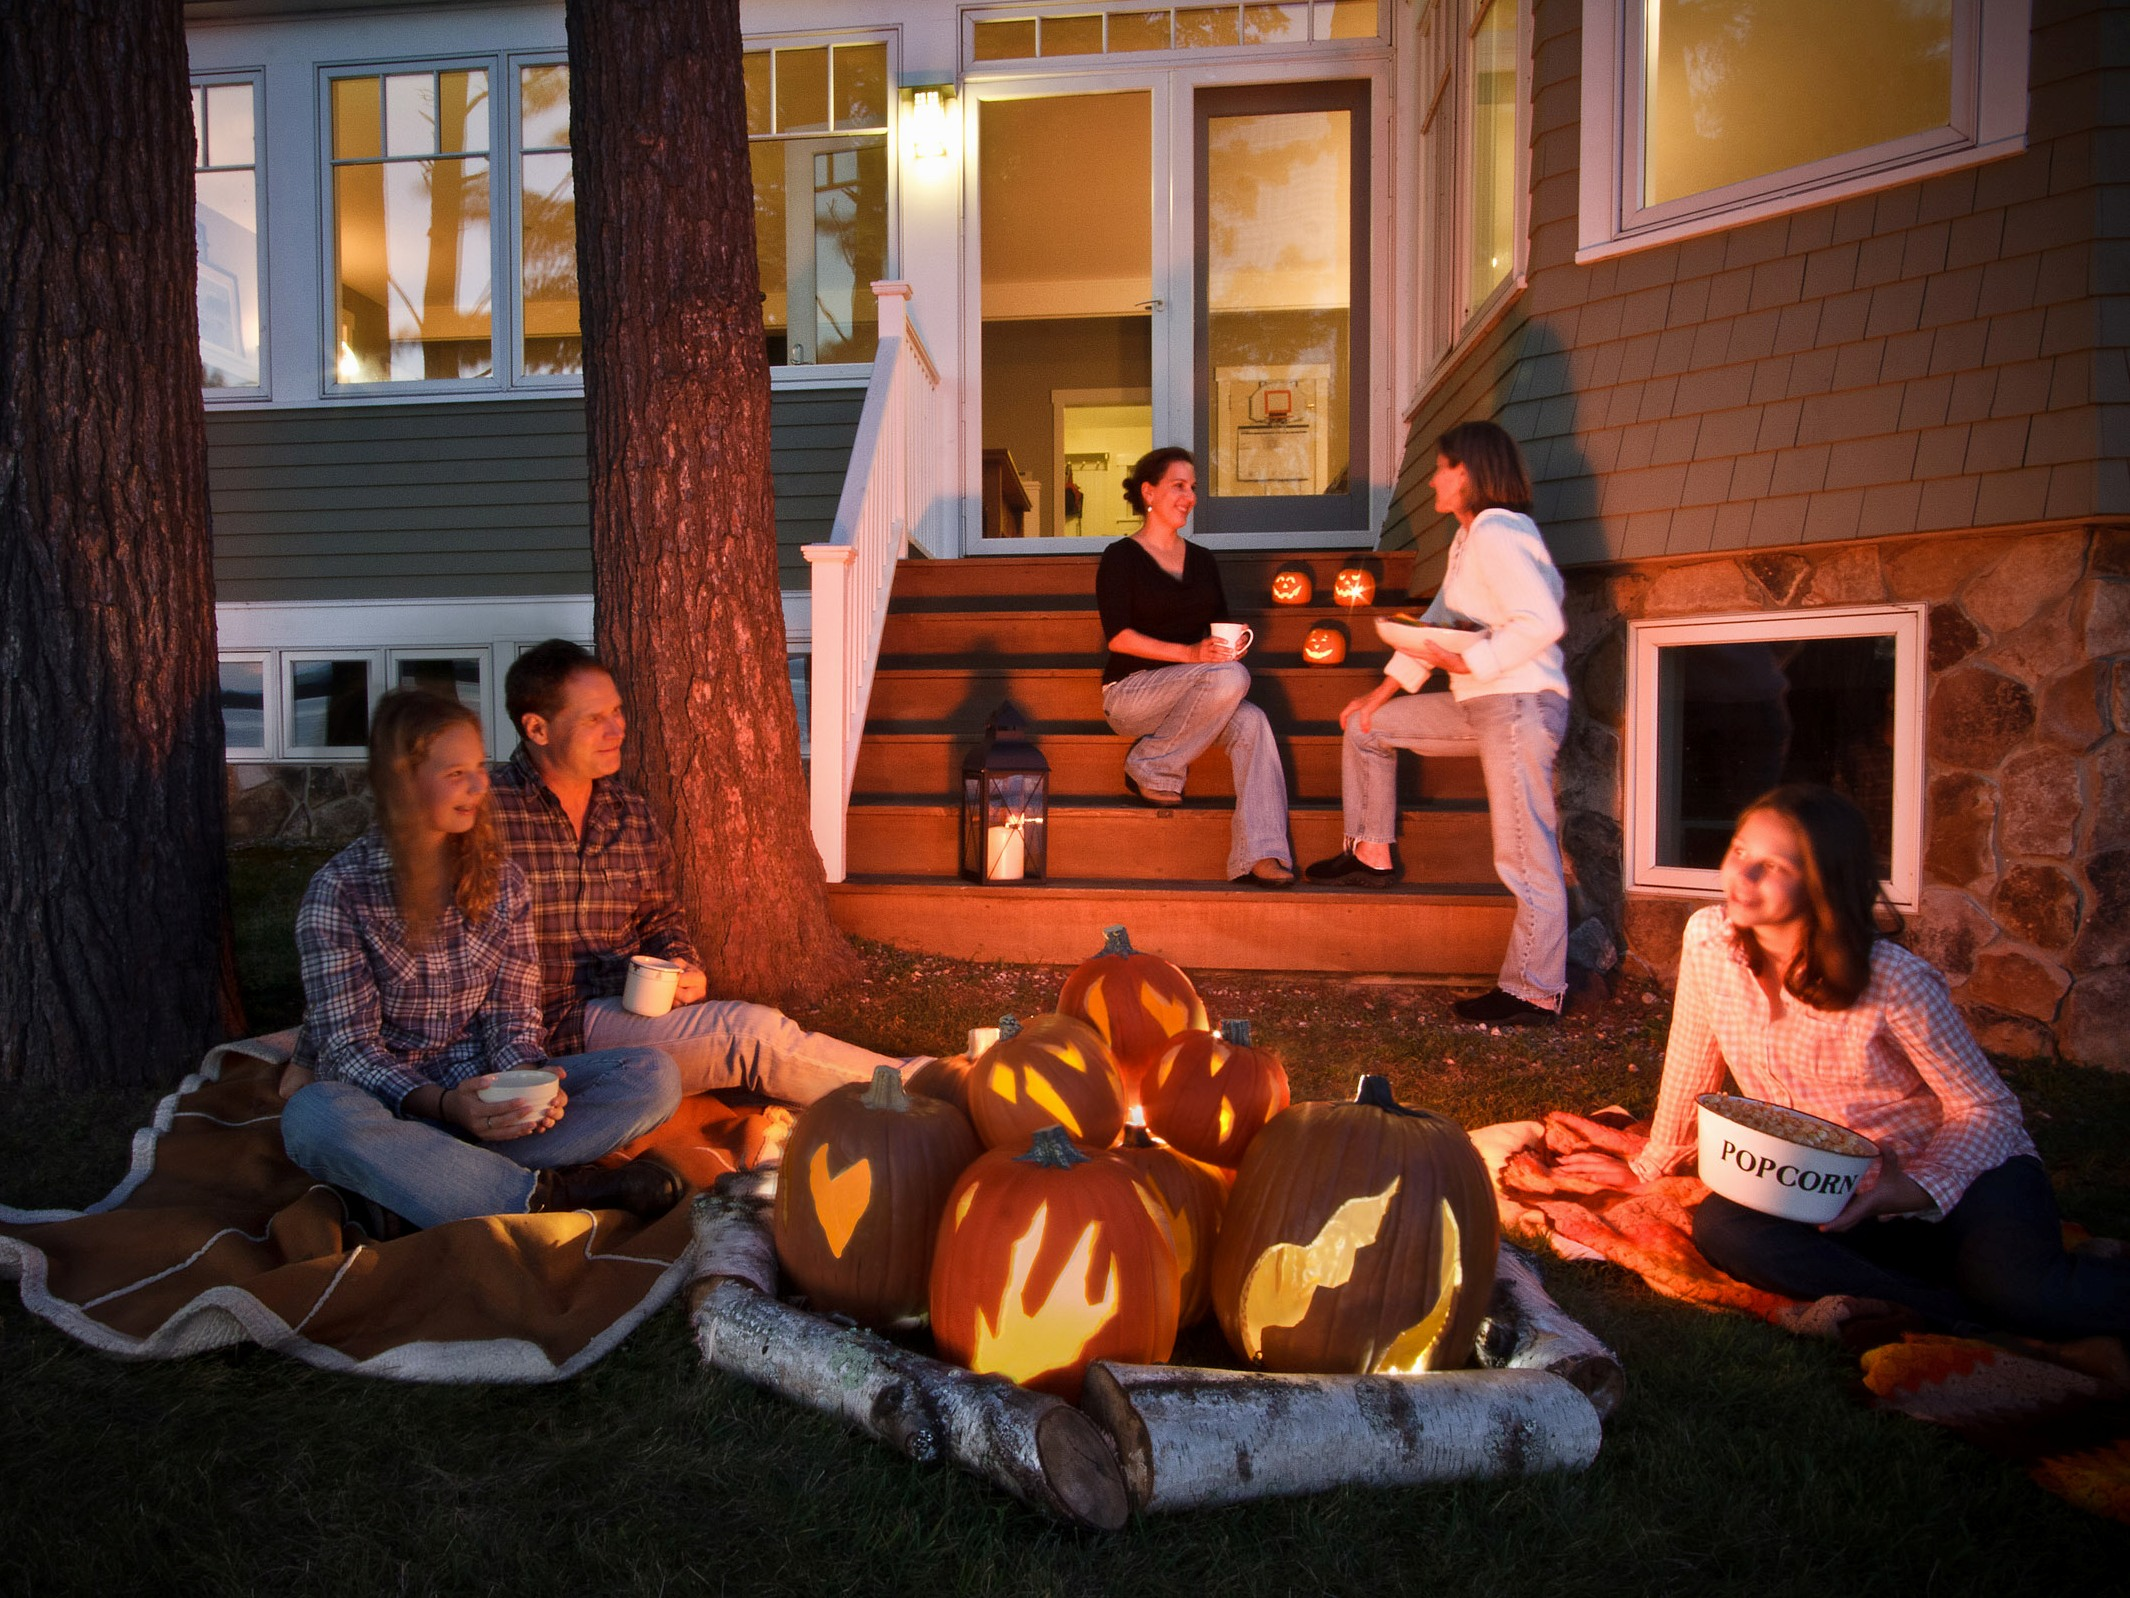 Let's get this party started...with a faux pumpkin bonfire! This way you can bring it out year after year!http://www.diynetwork.com/how-to/make-and-decorate/crafts/how-to-make-a-halloween-pumpkin-faux-bonfire